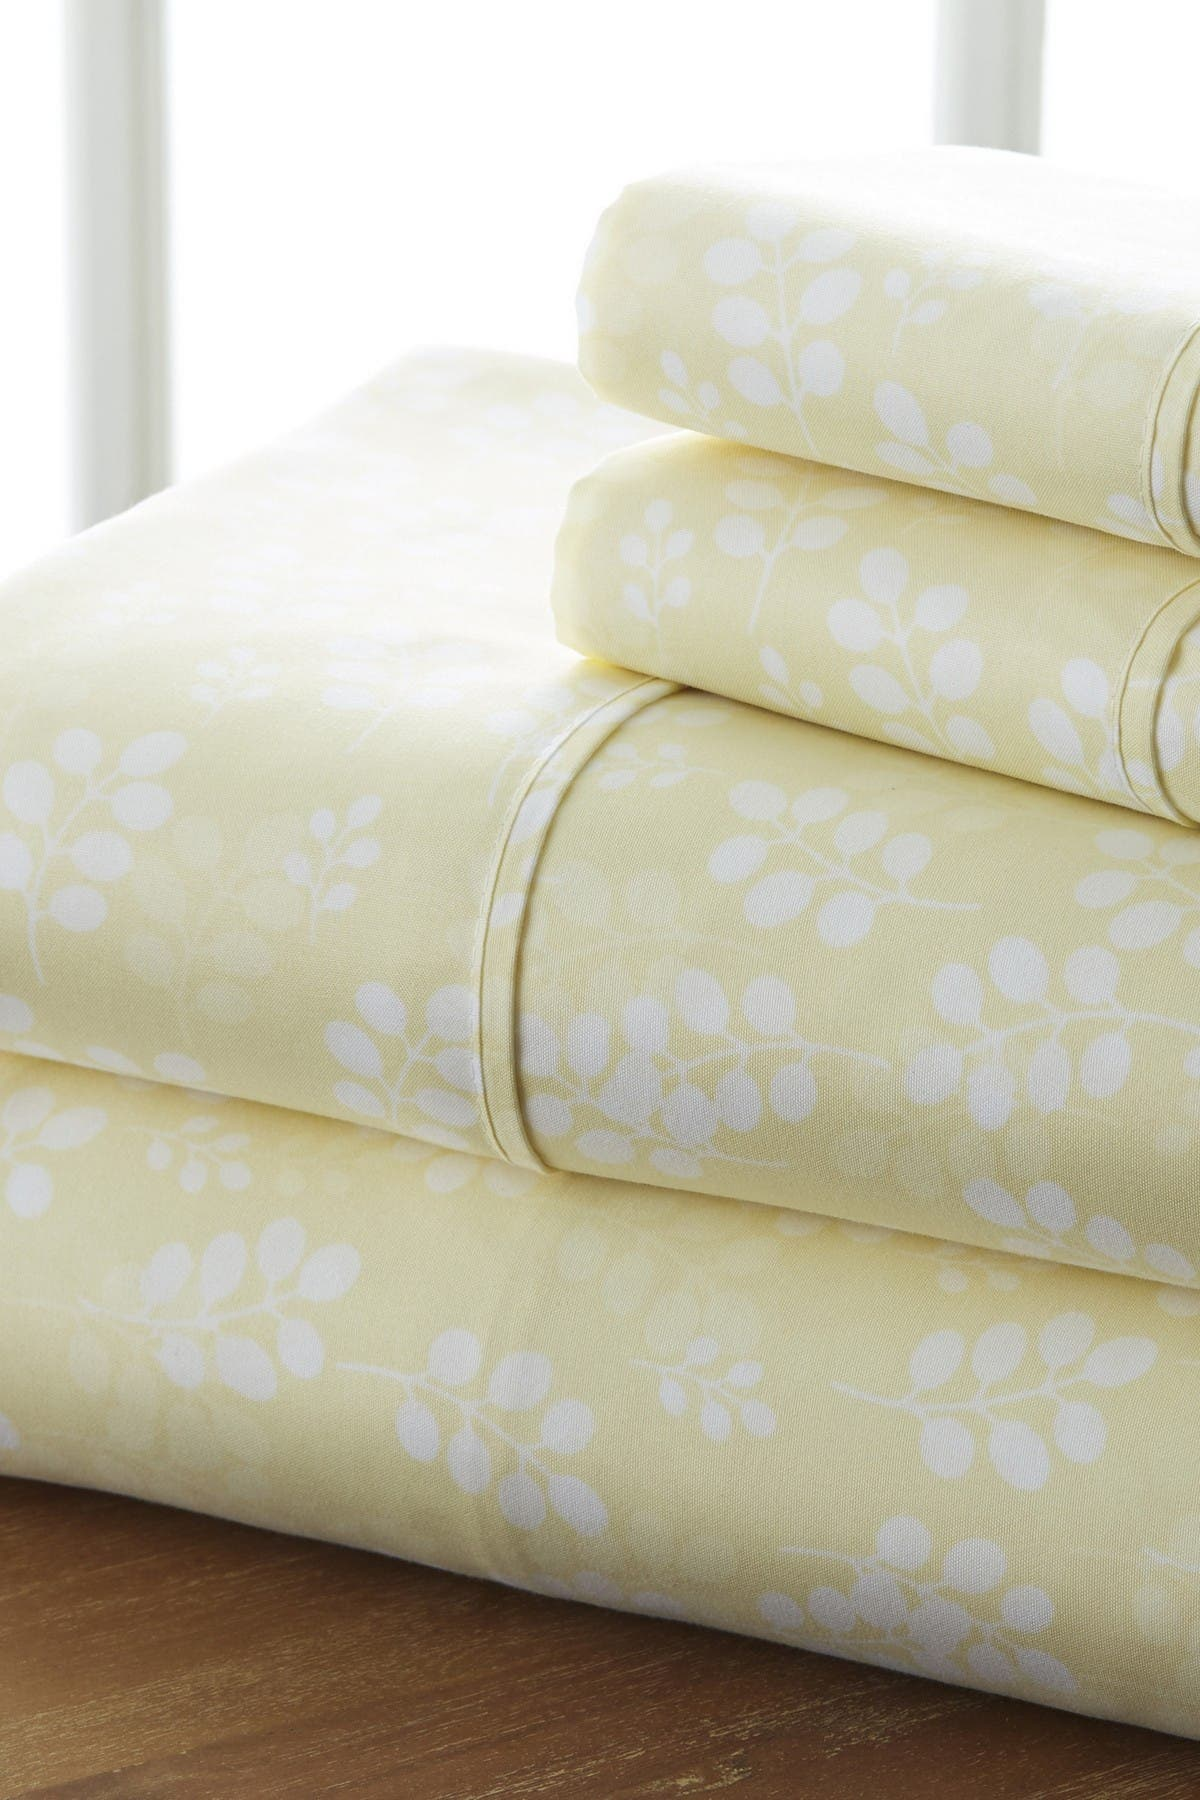 Image of IENJOY HOME Home Spun Premium Ultra Soft Wheat Pattern 4-Piece Full Bed Sheet Set - Ivory